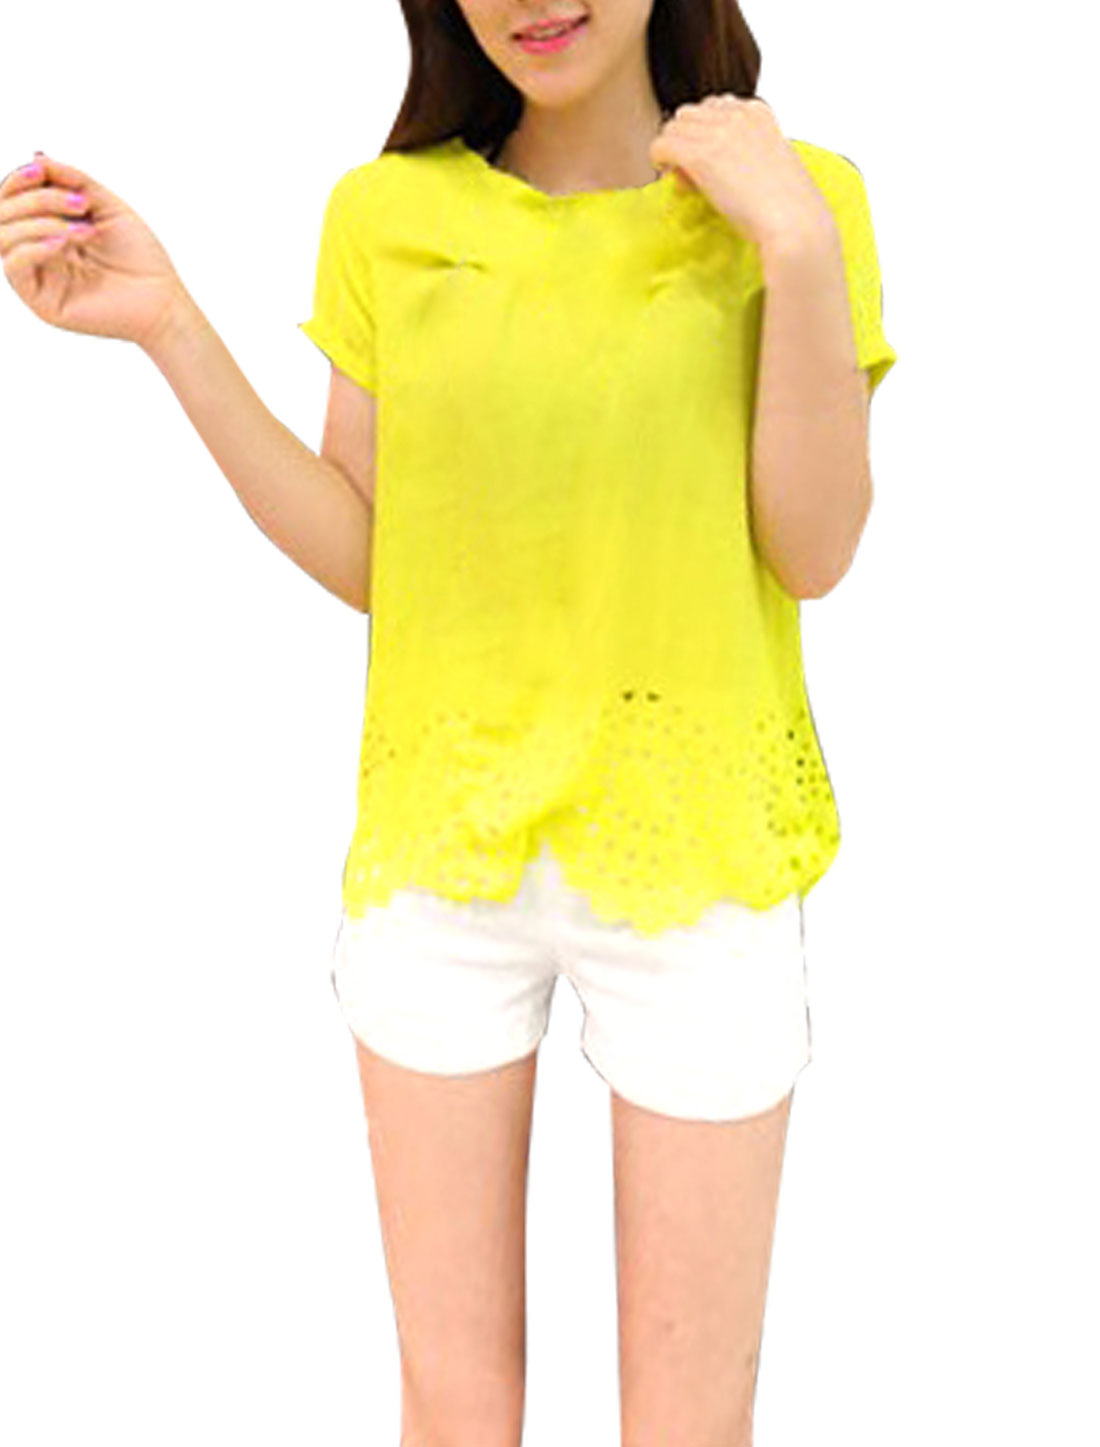 Ladies Newly Short Sleeve Cutout Design Pure Yellow Chiffon Blouse XS